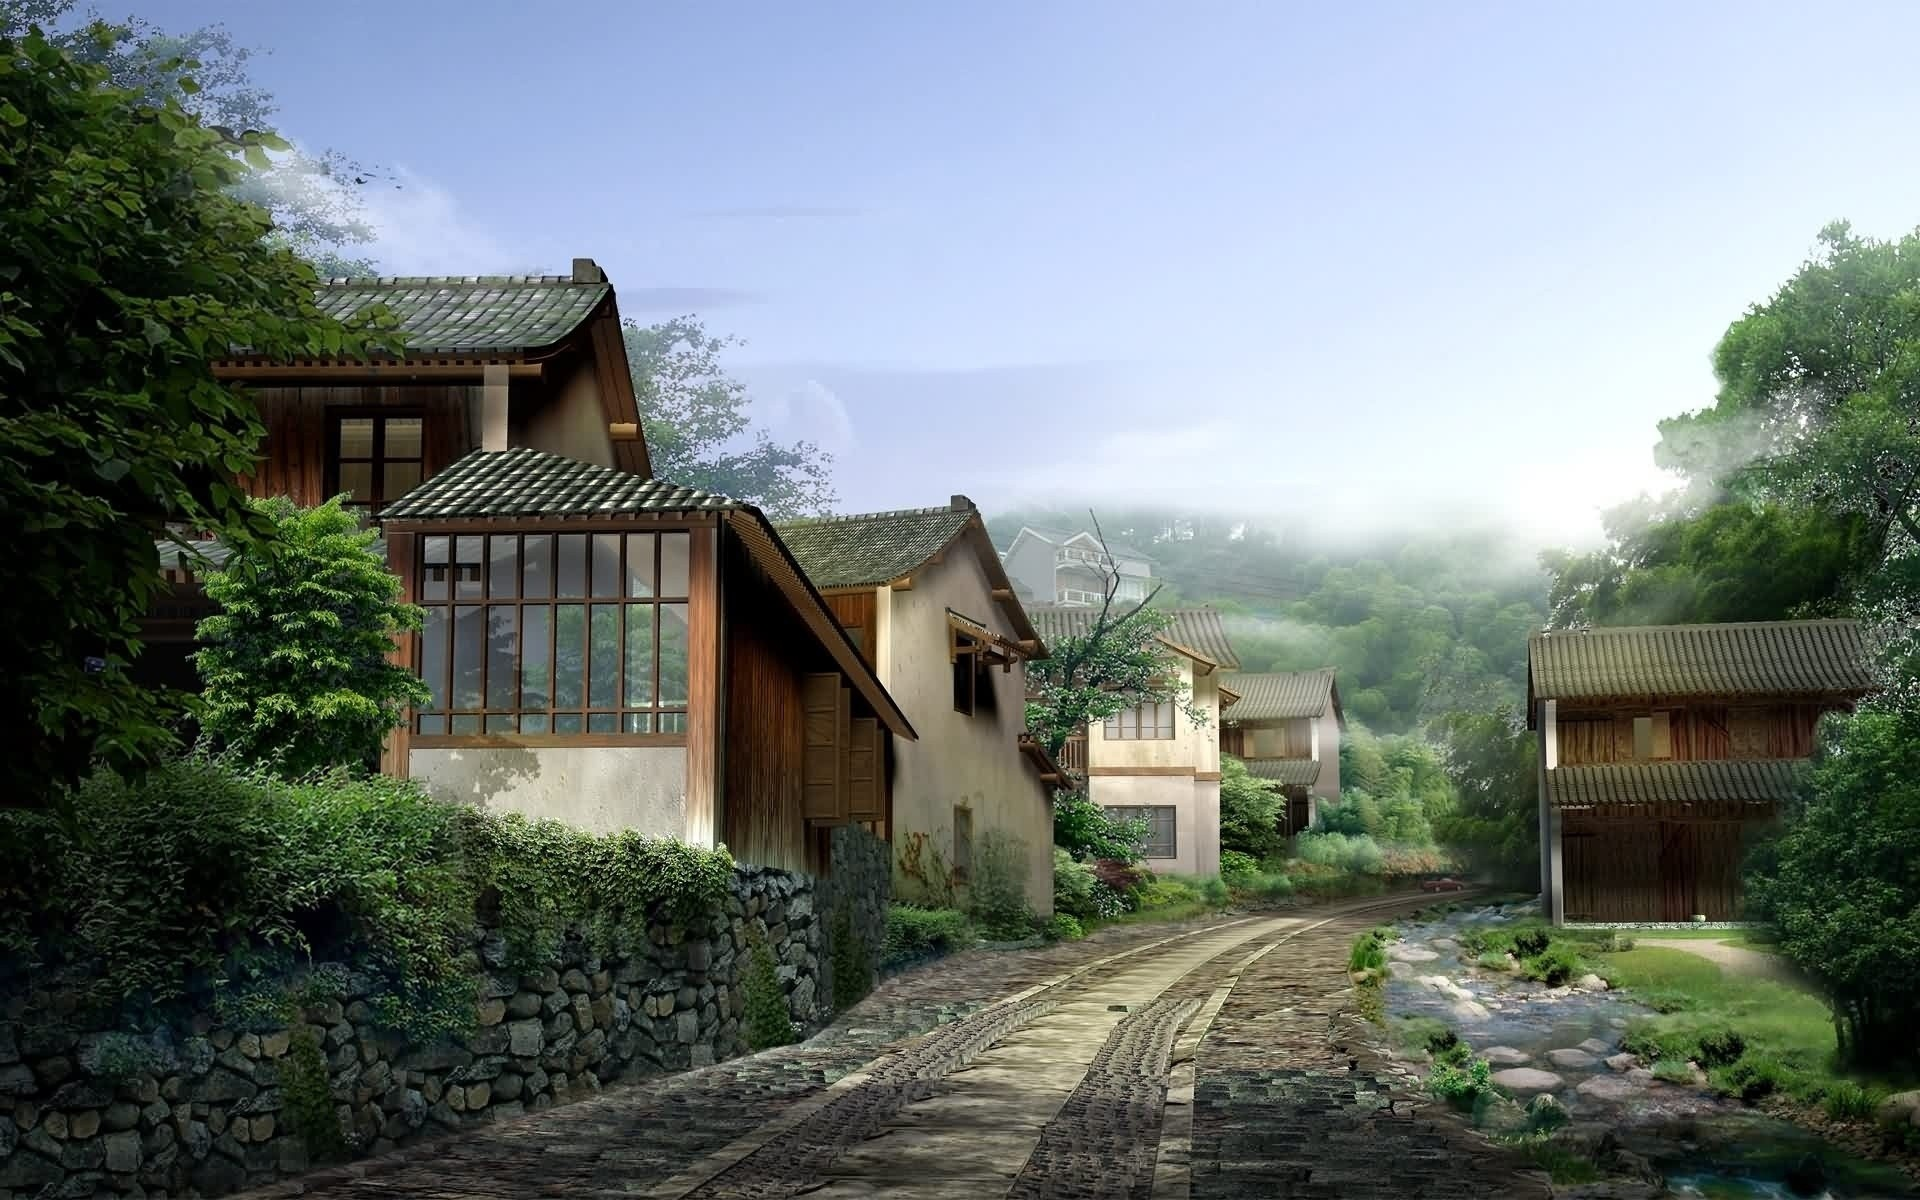 city and architecture house architecture building home wood family tree travel outdoors daylight bungalow roof wooden